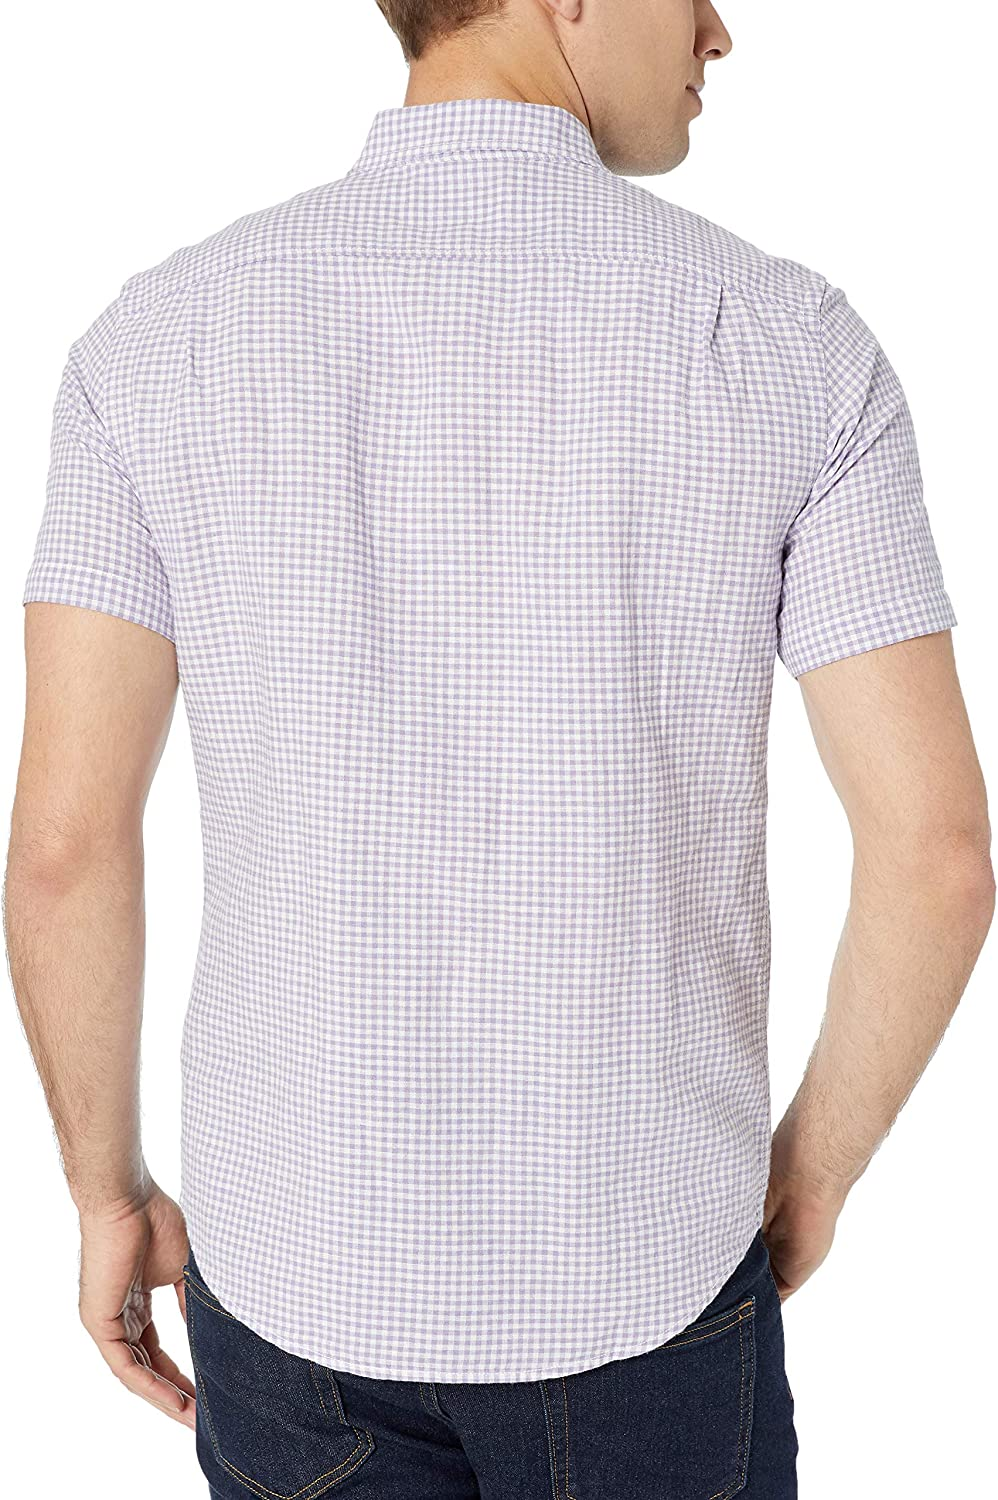 Essentials Leinenhemd Slim-Fit Kurzarm Herren  Gingham-Karo